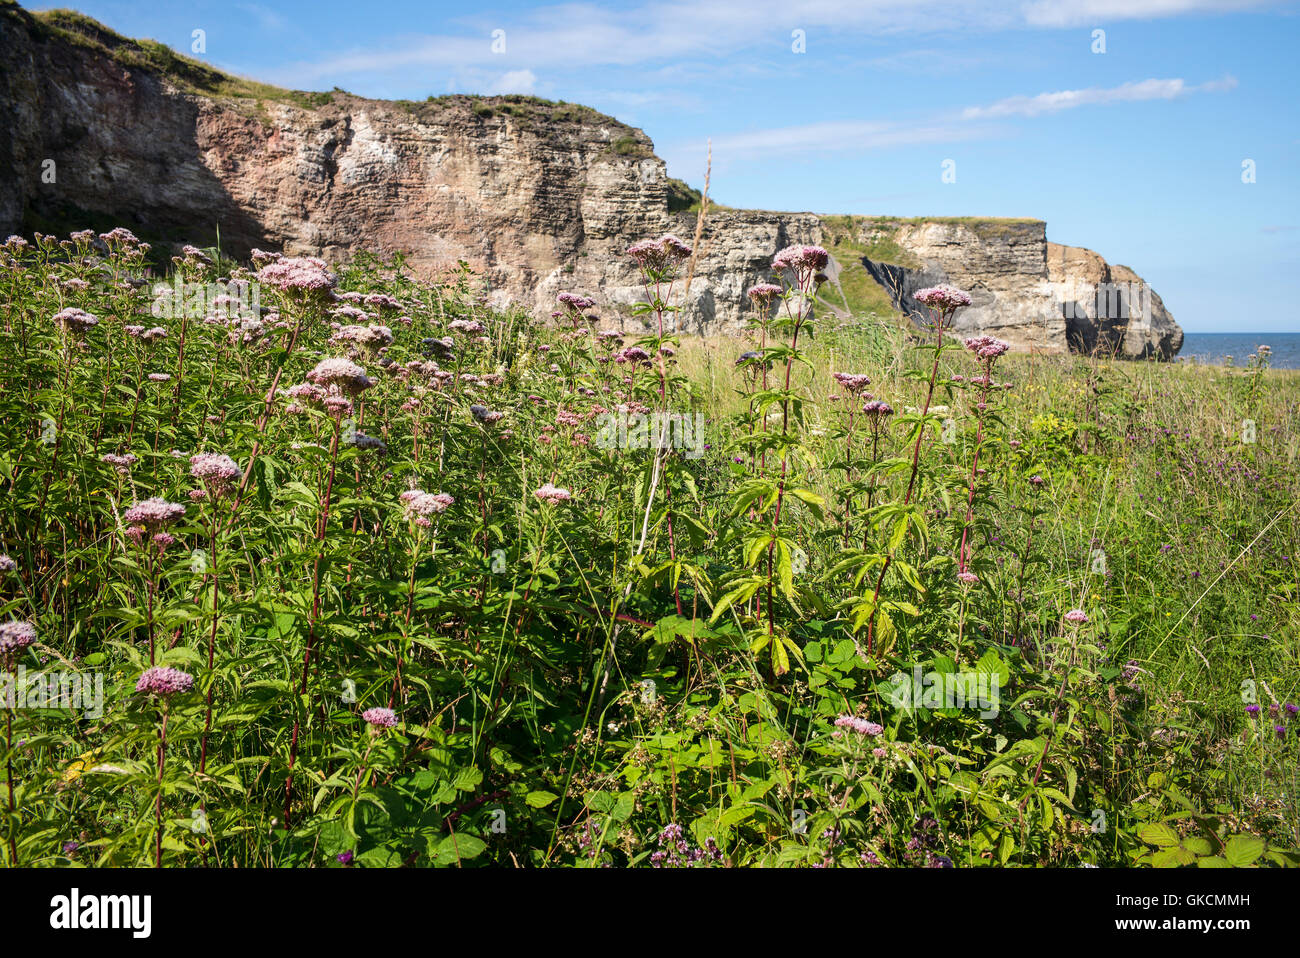 Eutrochium purpureum, syn. Eupatorium purpureum, Joe Pye Weed growing on Blast Beach with sea cliffs at Nose's - Stock Image